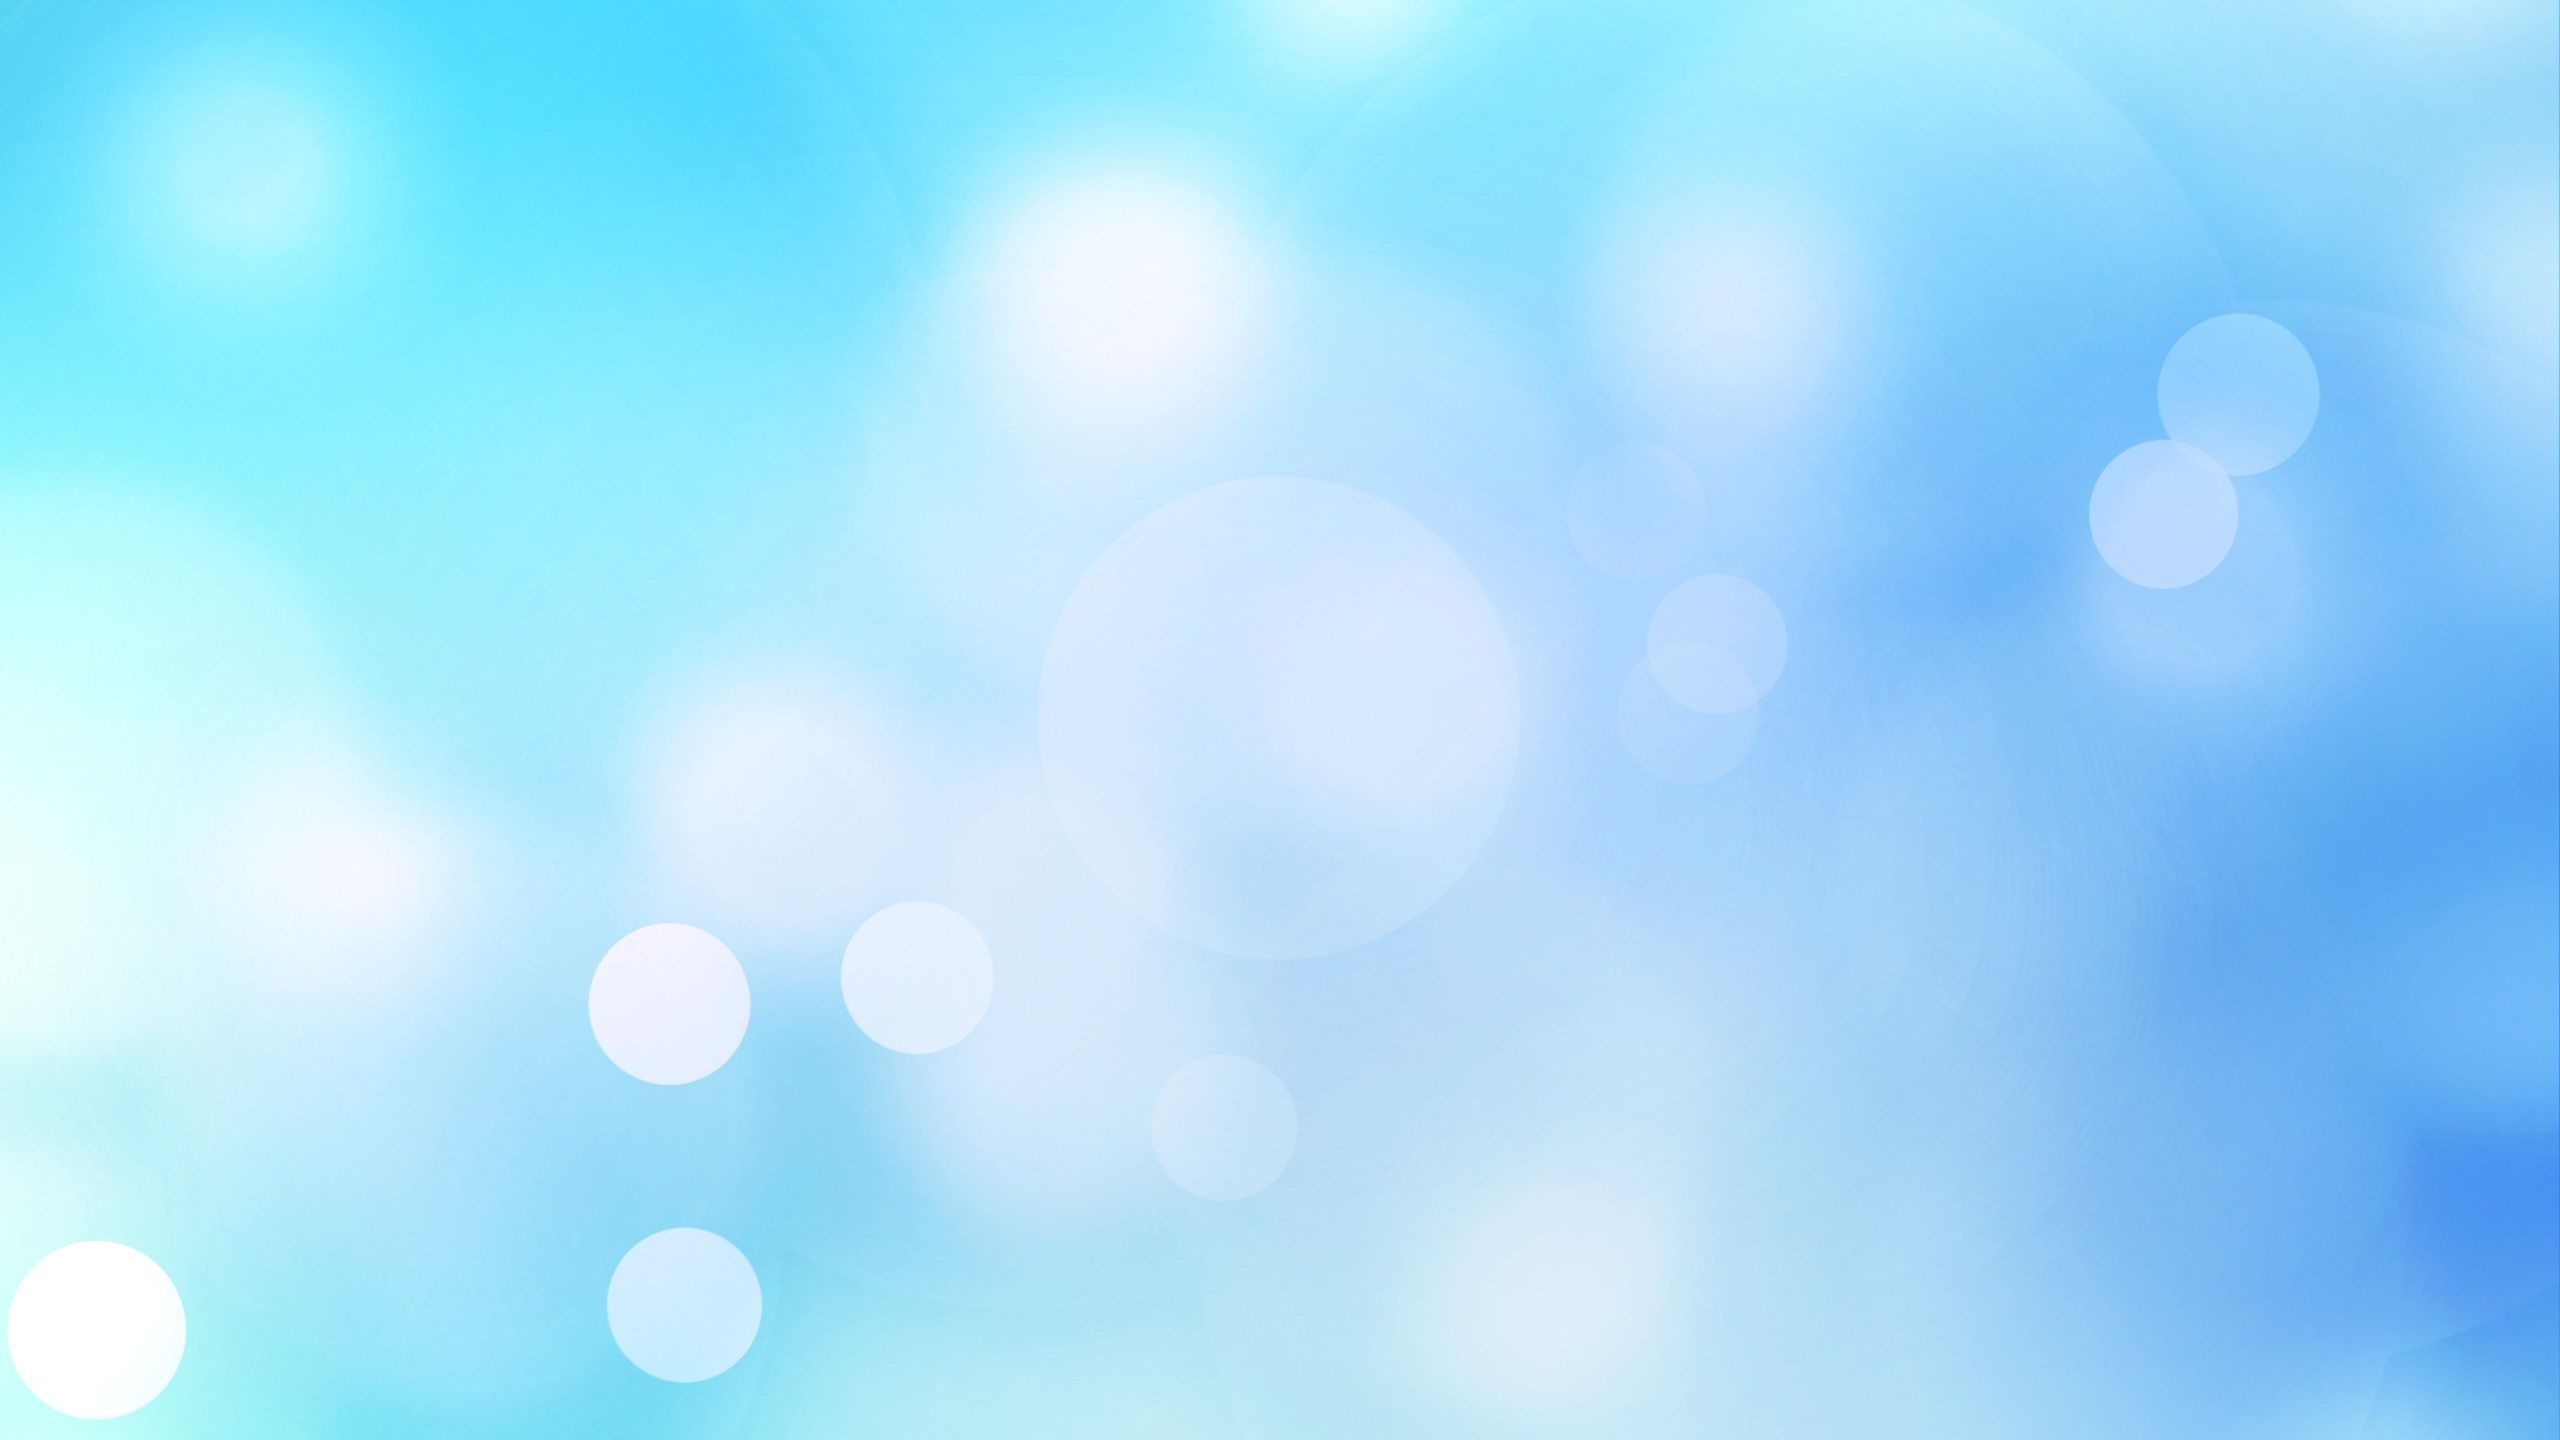 Light Blue HD Backgrounds | PixelsTalk Net